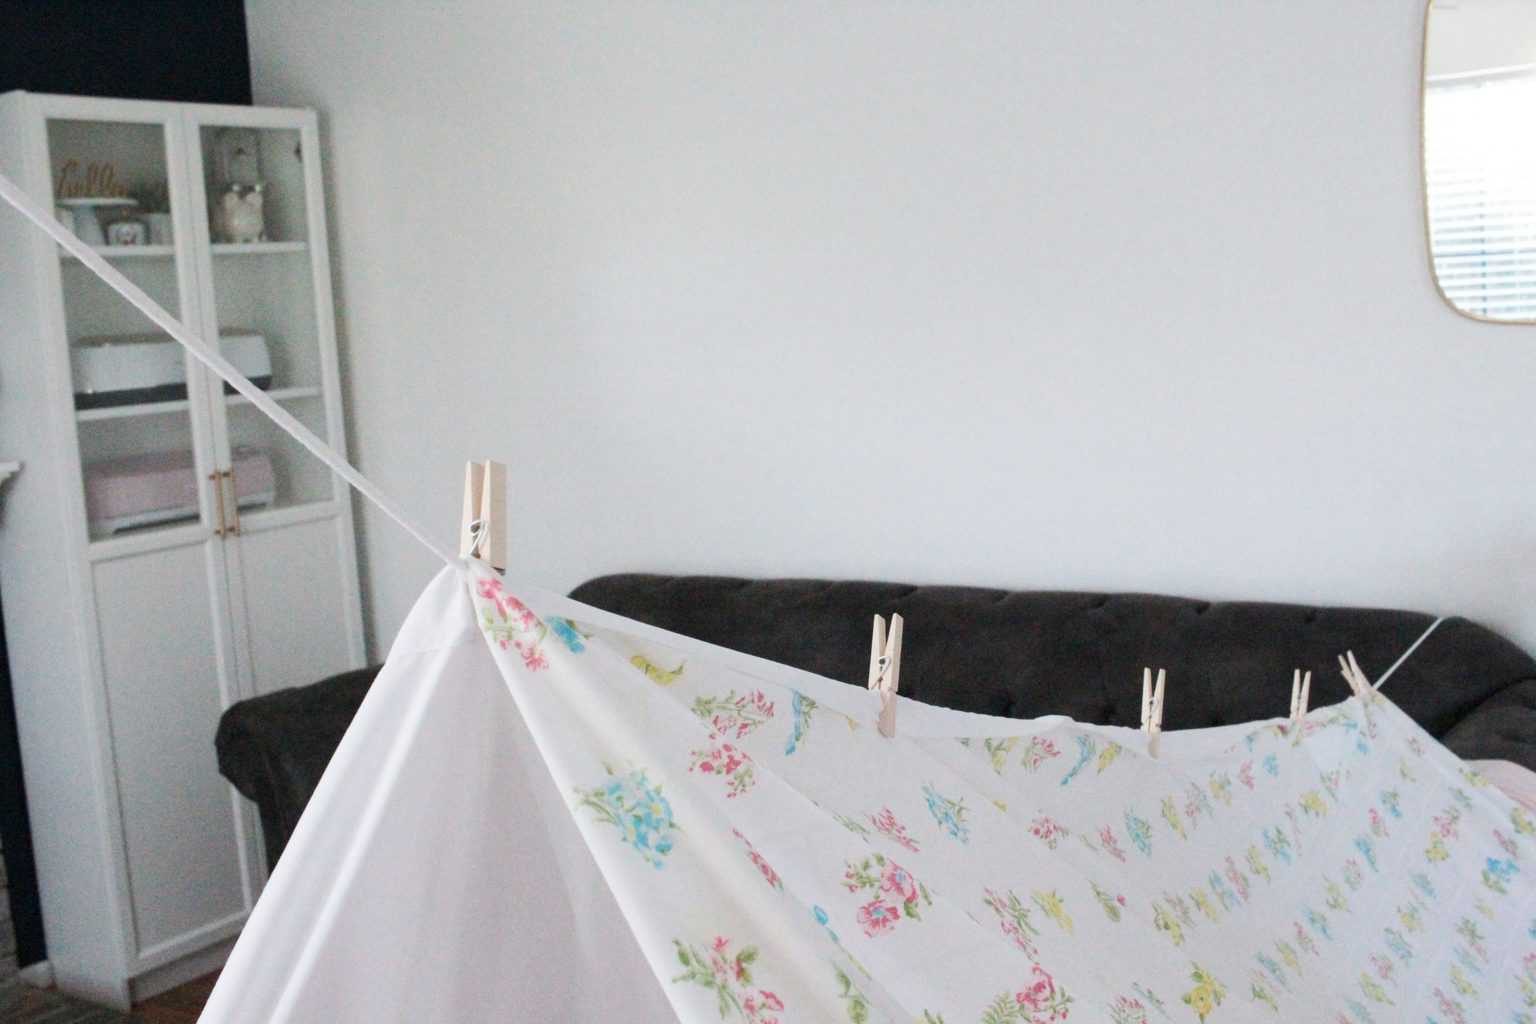 How to make a fort with clothes line or rope, clothes pins, and bed sheets.